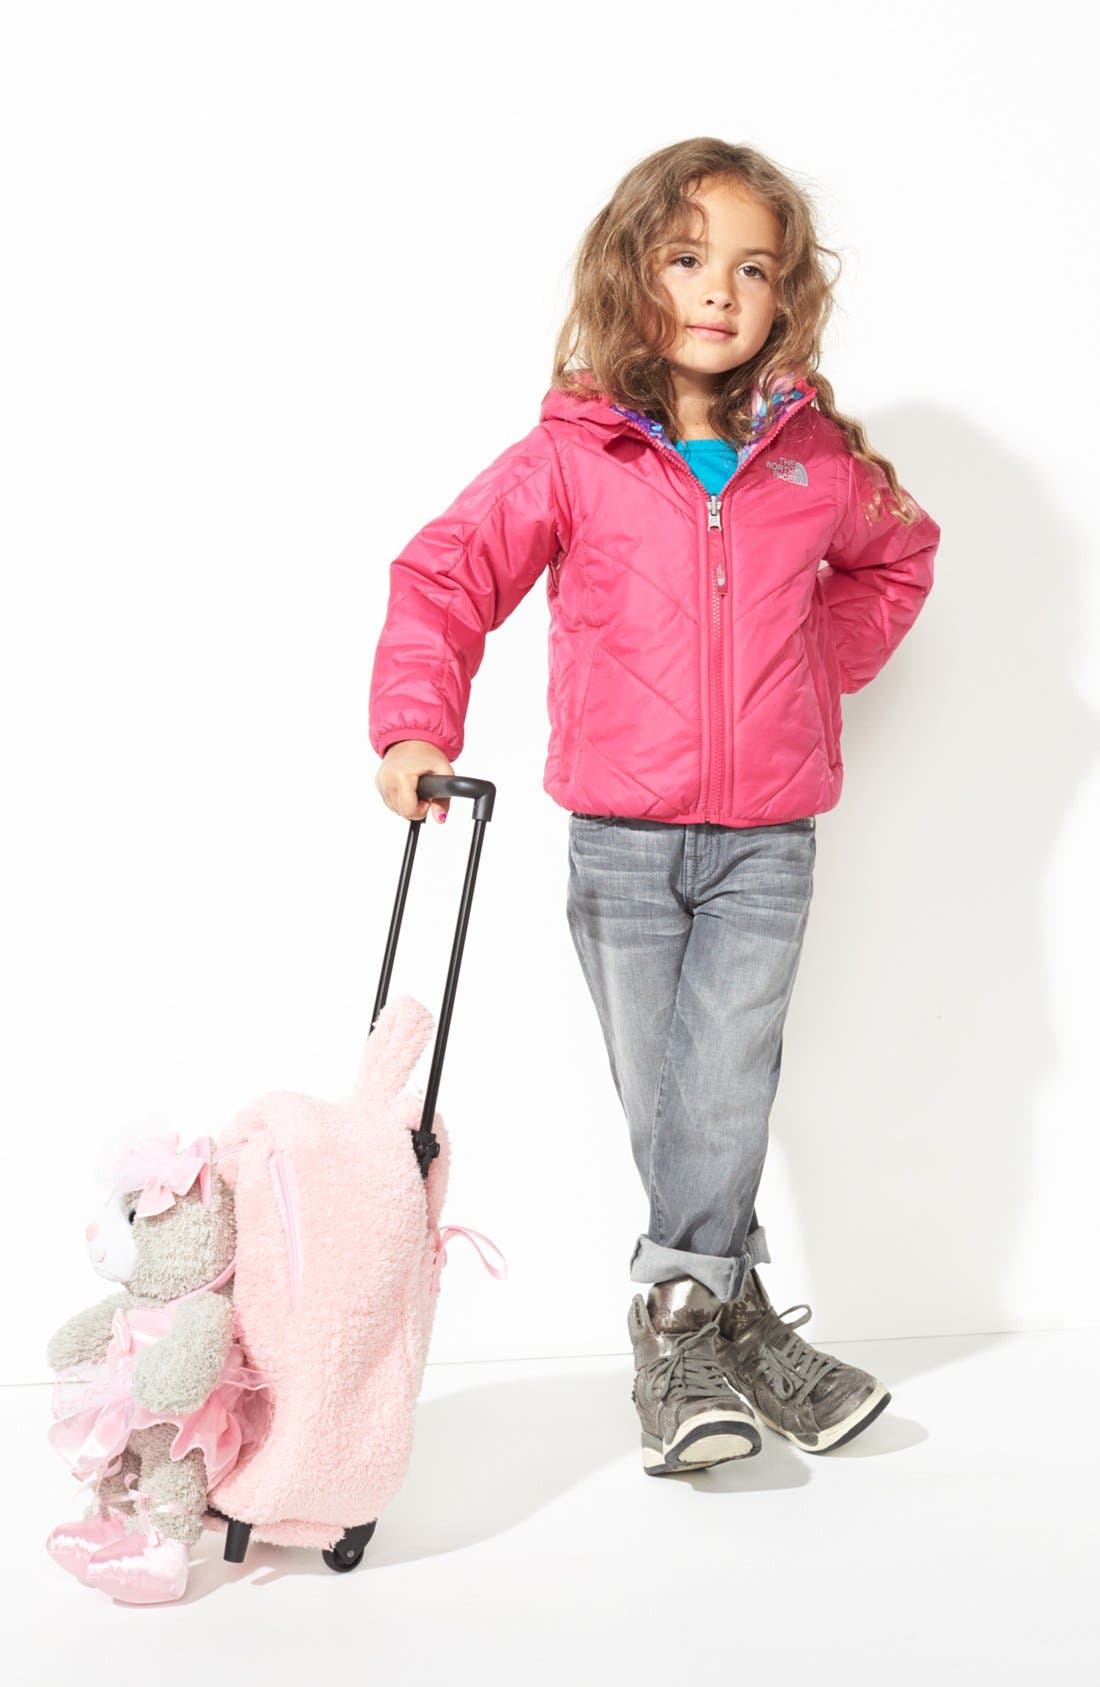 Main Image - The North Face Reversible Puffer Jacket, Tucker + Tate Intarsia Sweater, Joe's Denim Jeggings & Popatu Rolling Backpack (Toddler Girls)